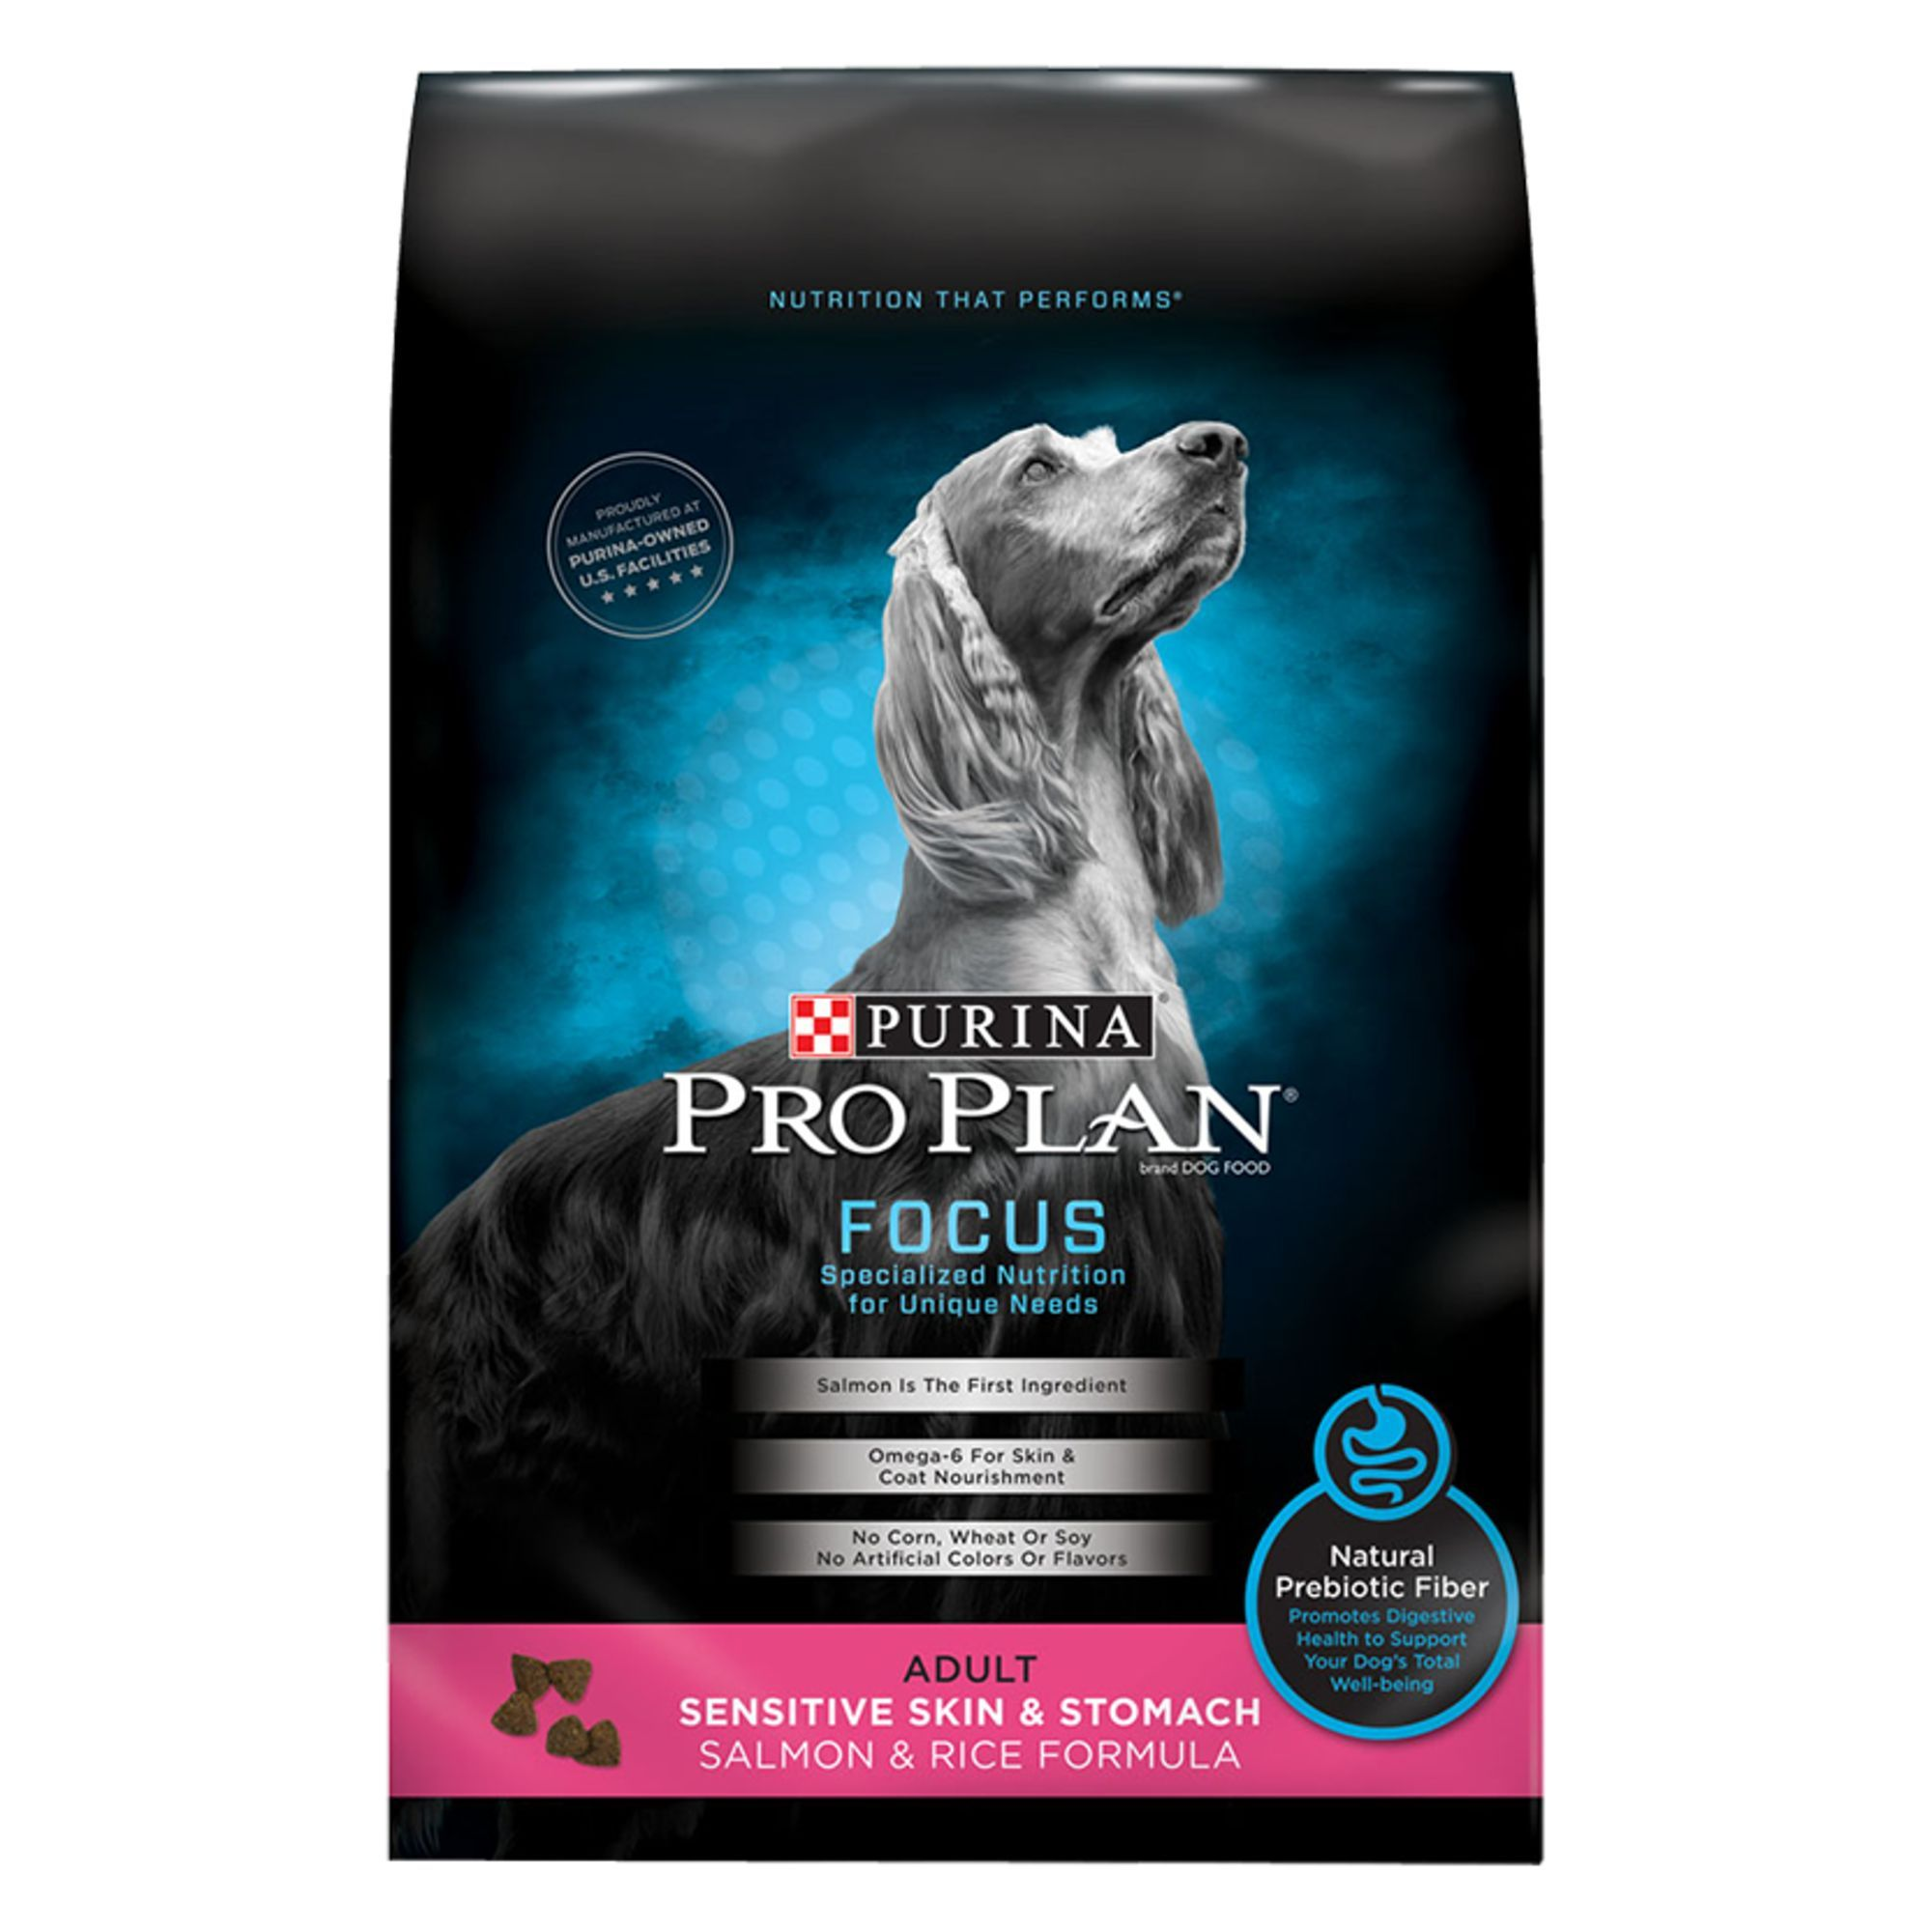 Purina Pro Plan Focus Sensitive Skin And Stomach Adult Dog Food